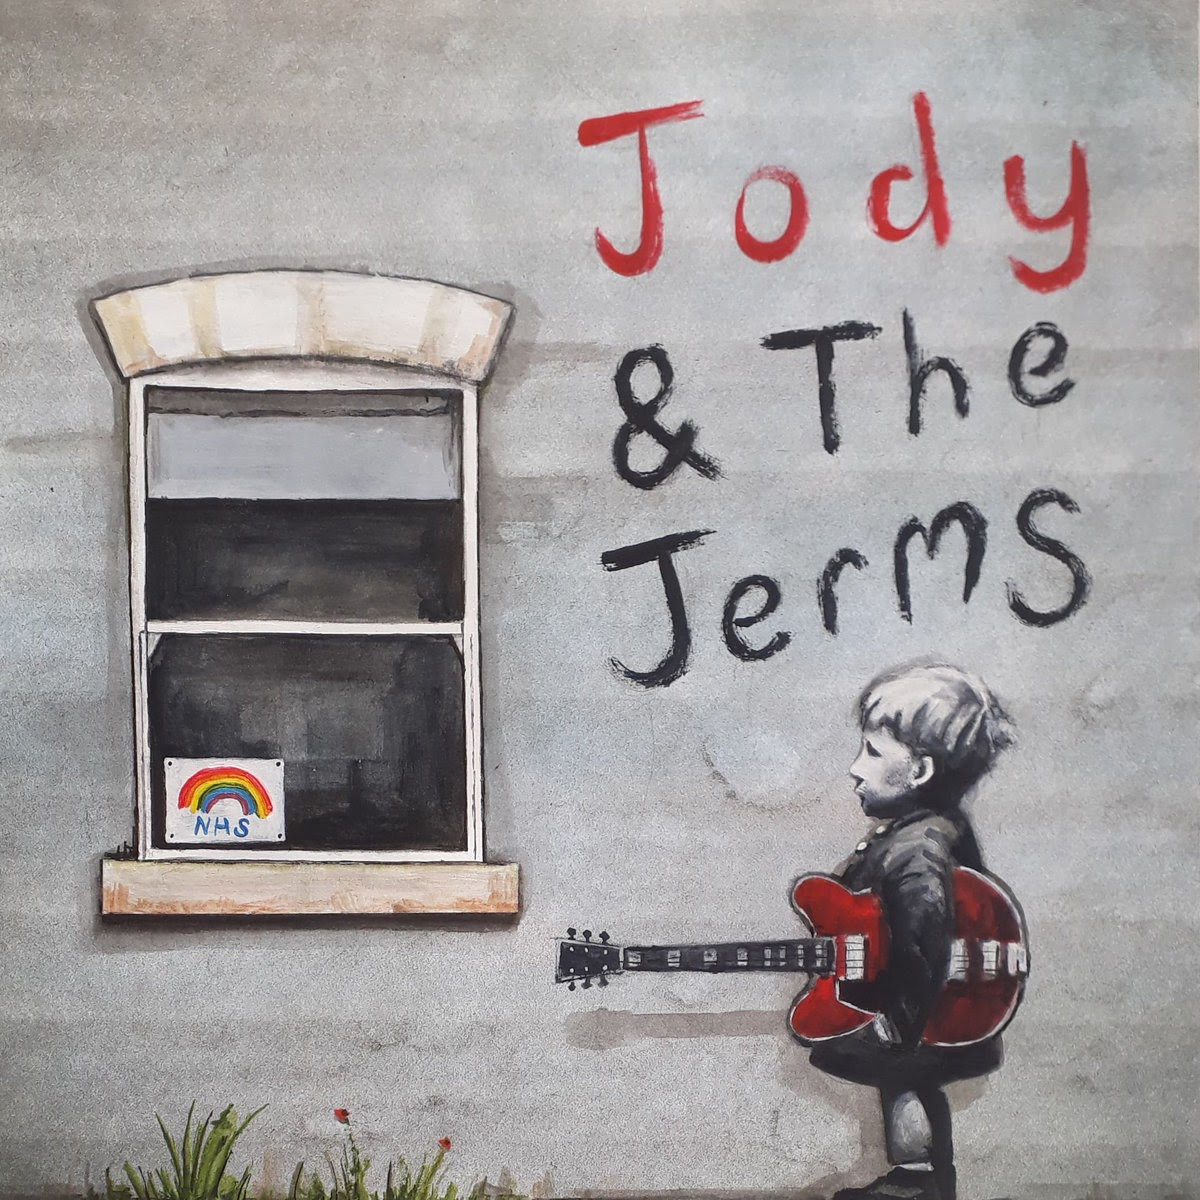 JODY AND THE JERMS